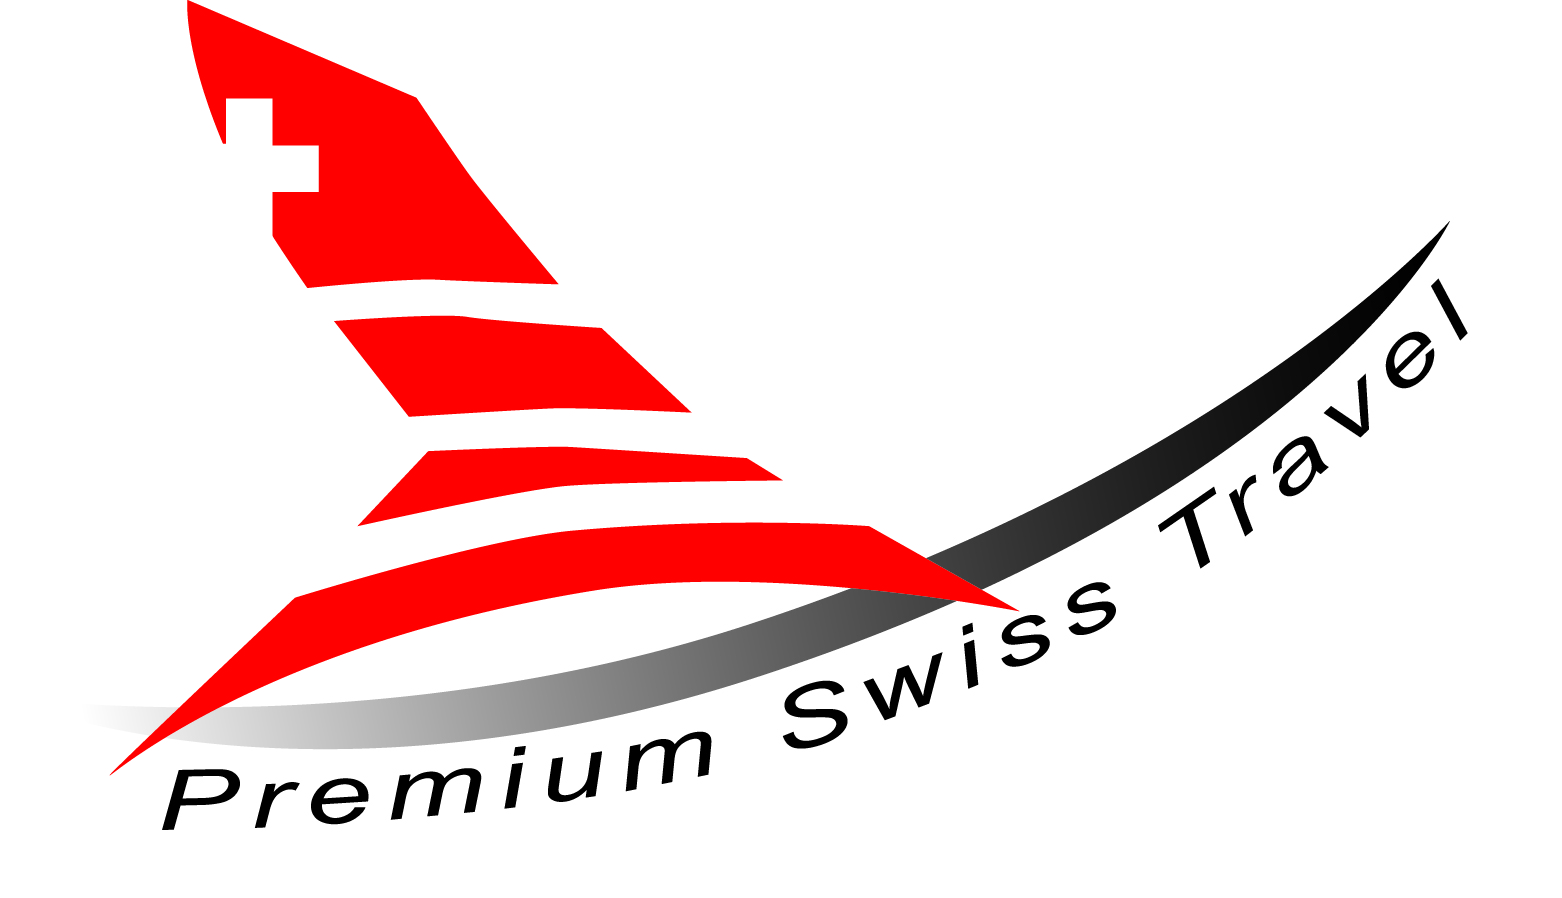 Premium Swiss Travel | Tours - Premium Swiss Travel